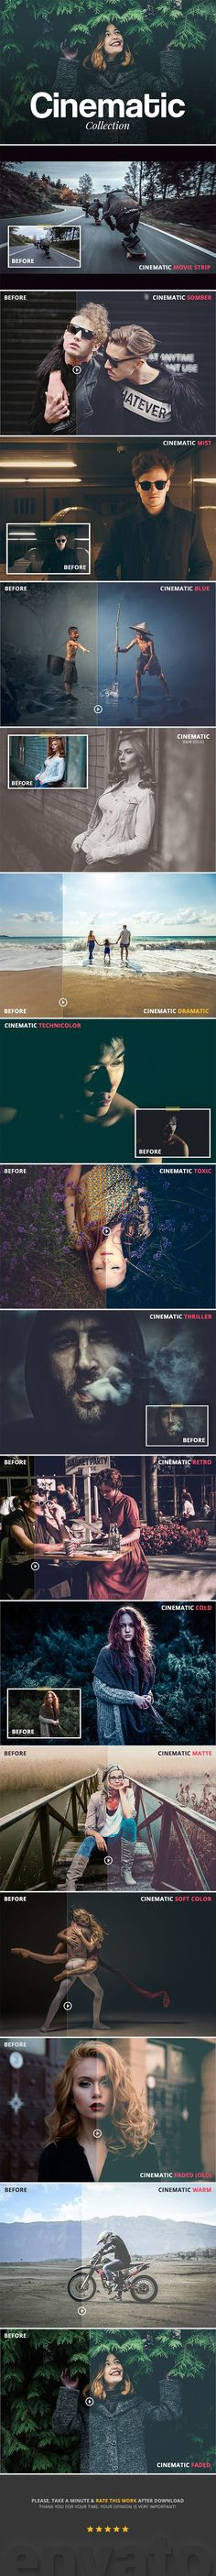 Cinematic Lightroom Presets by HYDROZi Cinematic Presets is a collection of presets for Adobe Lightroom that helps photographers to make their shots unique and attention